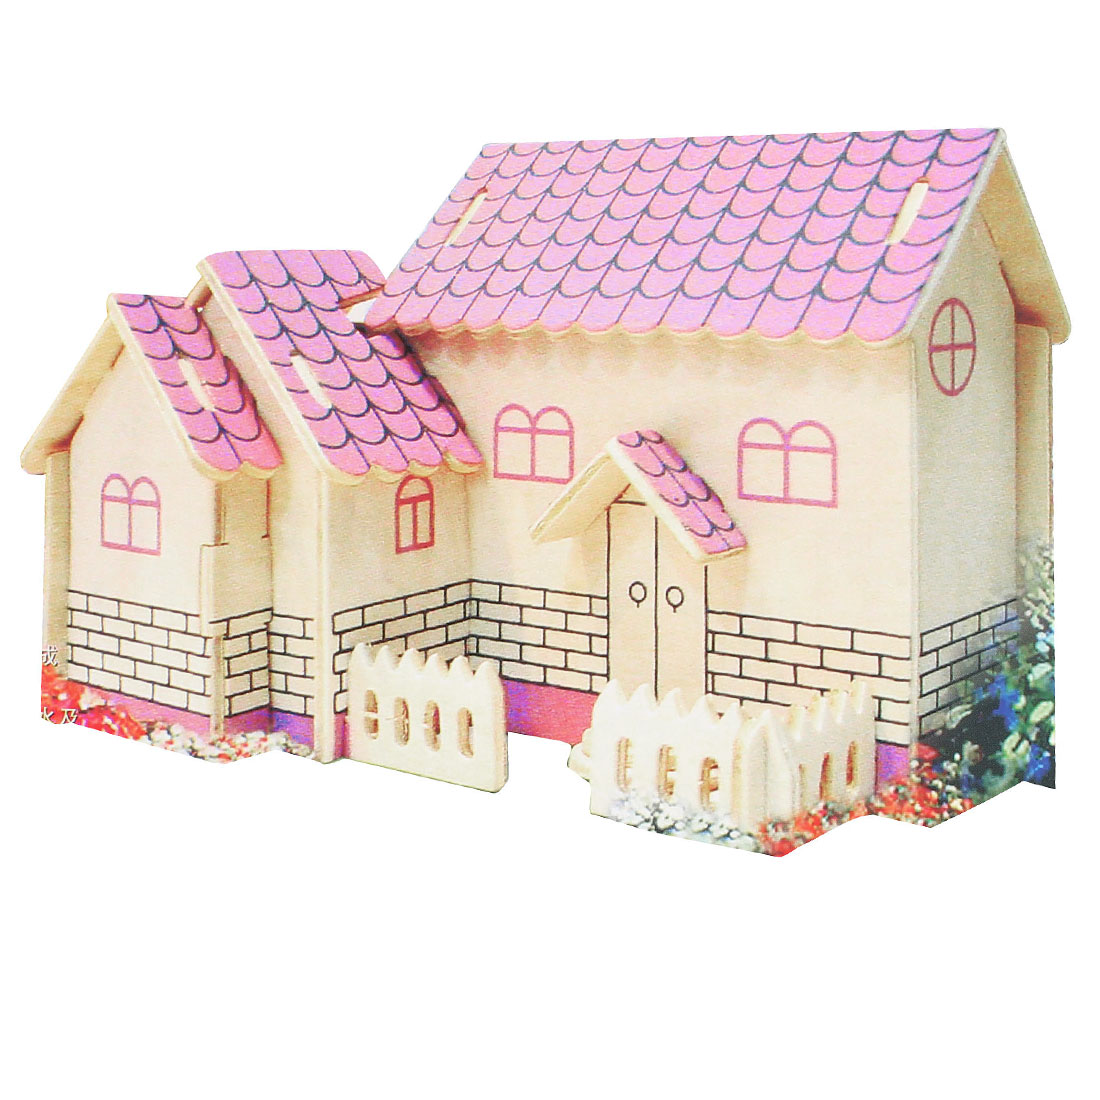 Mini Handcraft House 3D Model Wooden Puzzle Assembly Educational Toy Purple